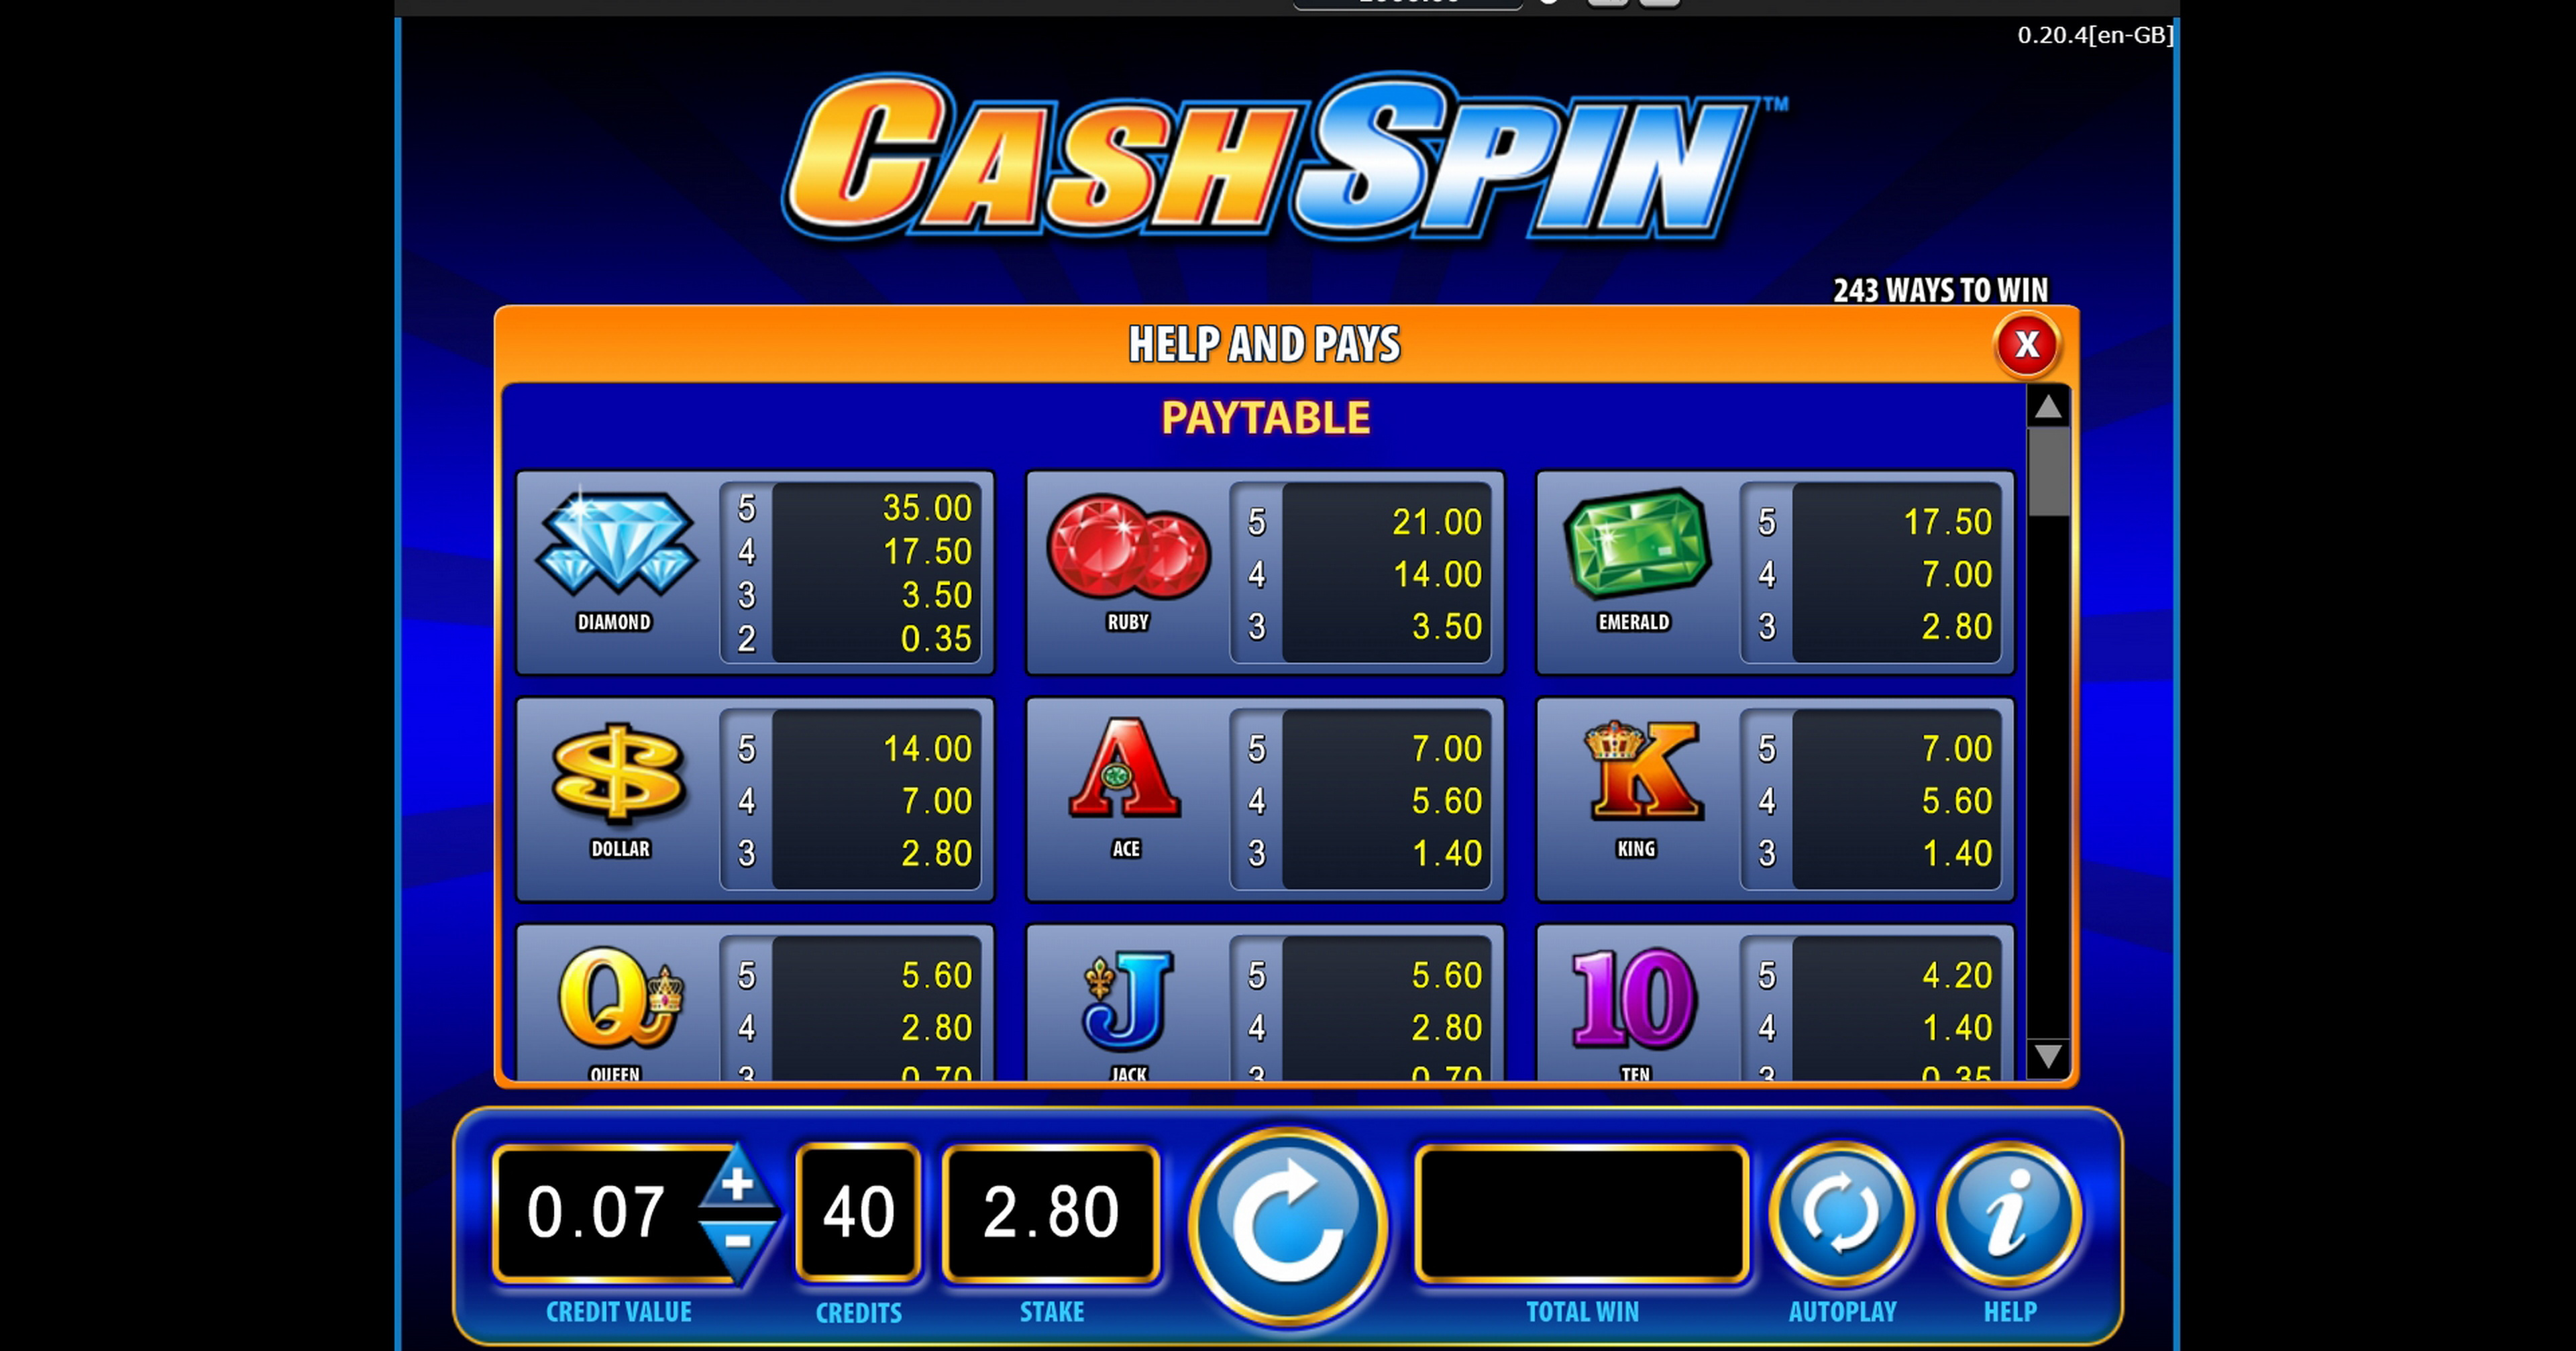 Info of Cash Spin Slot Game by Bally Technologies